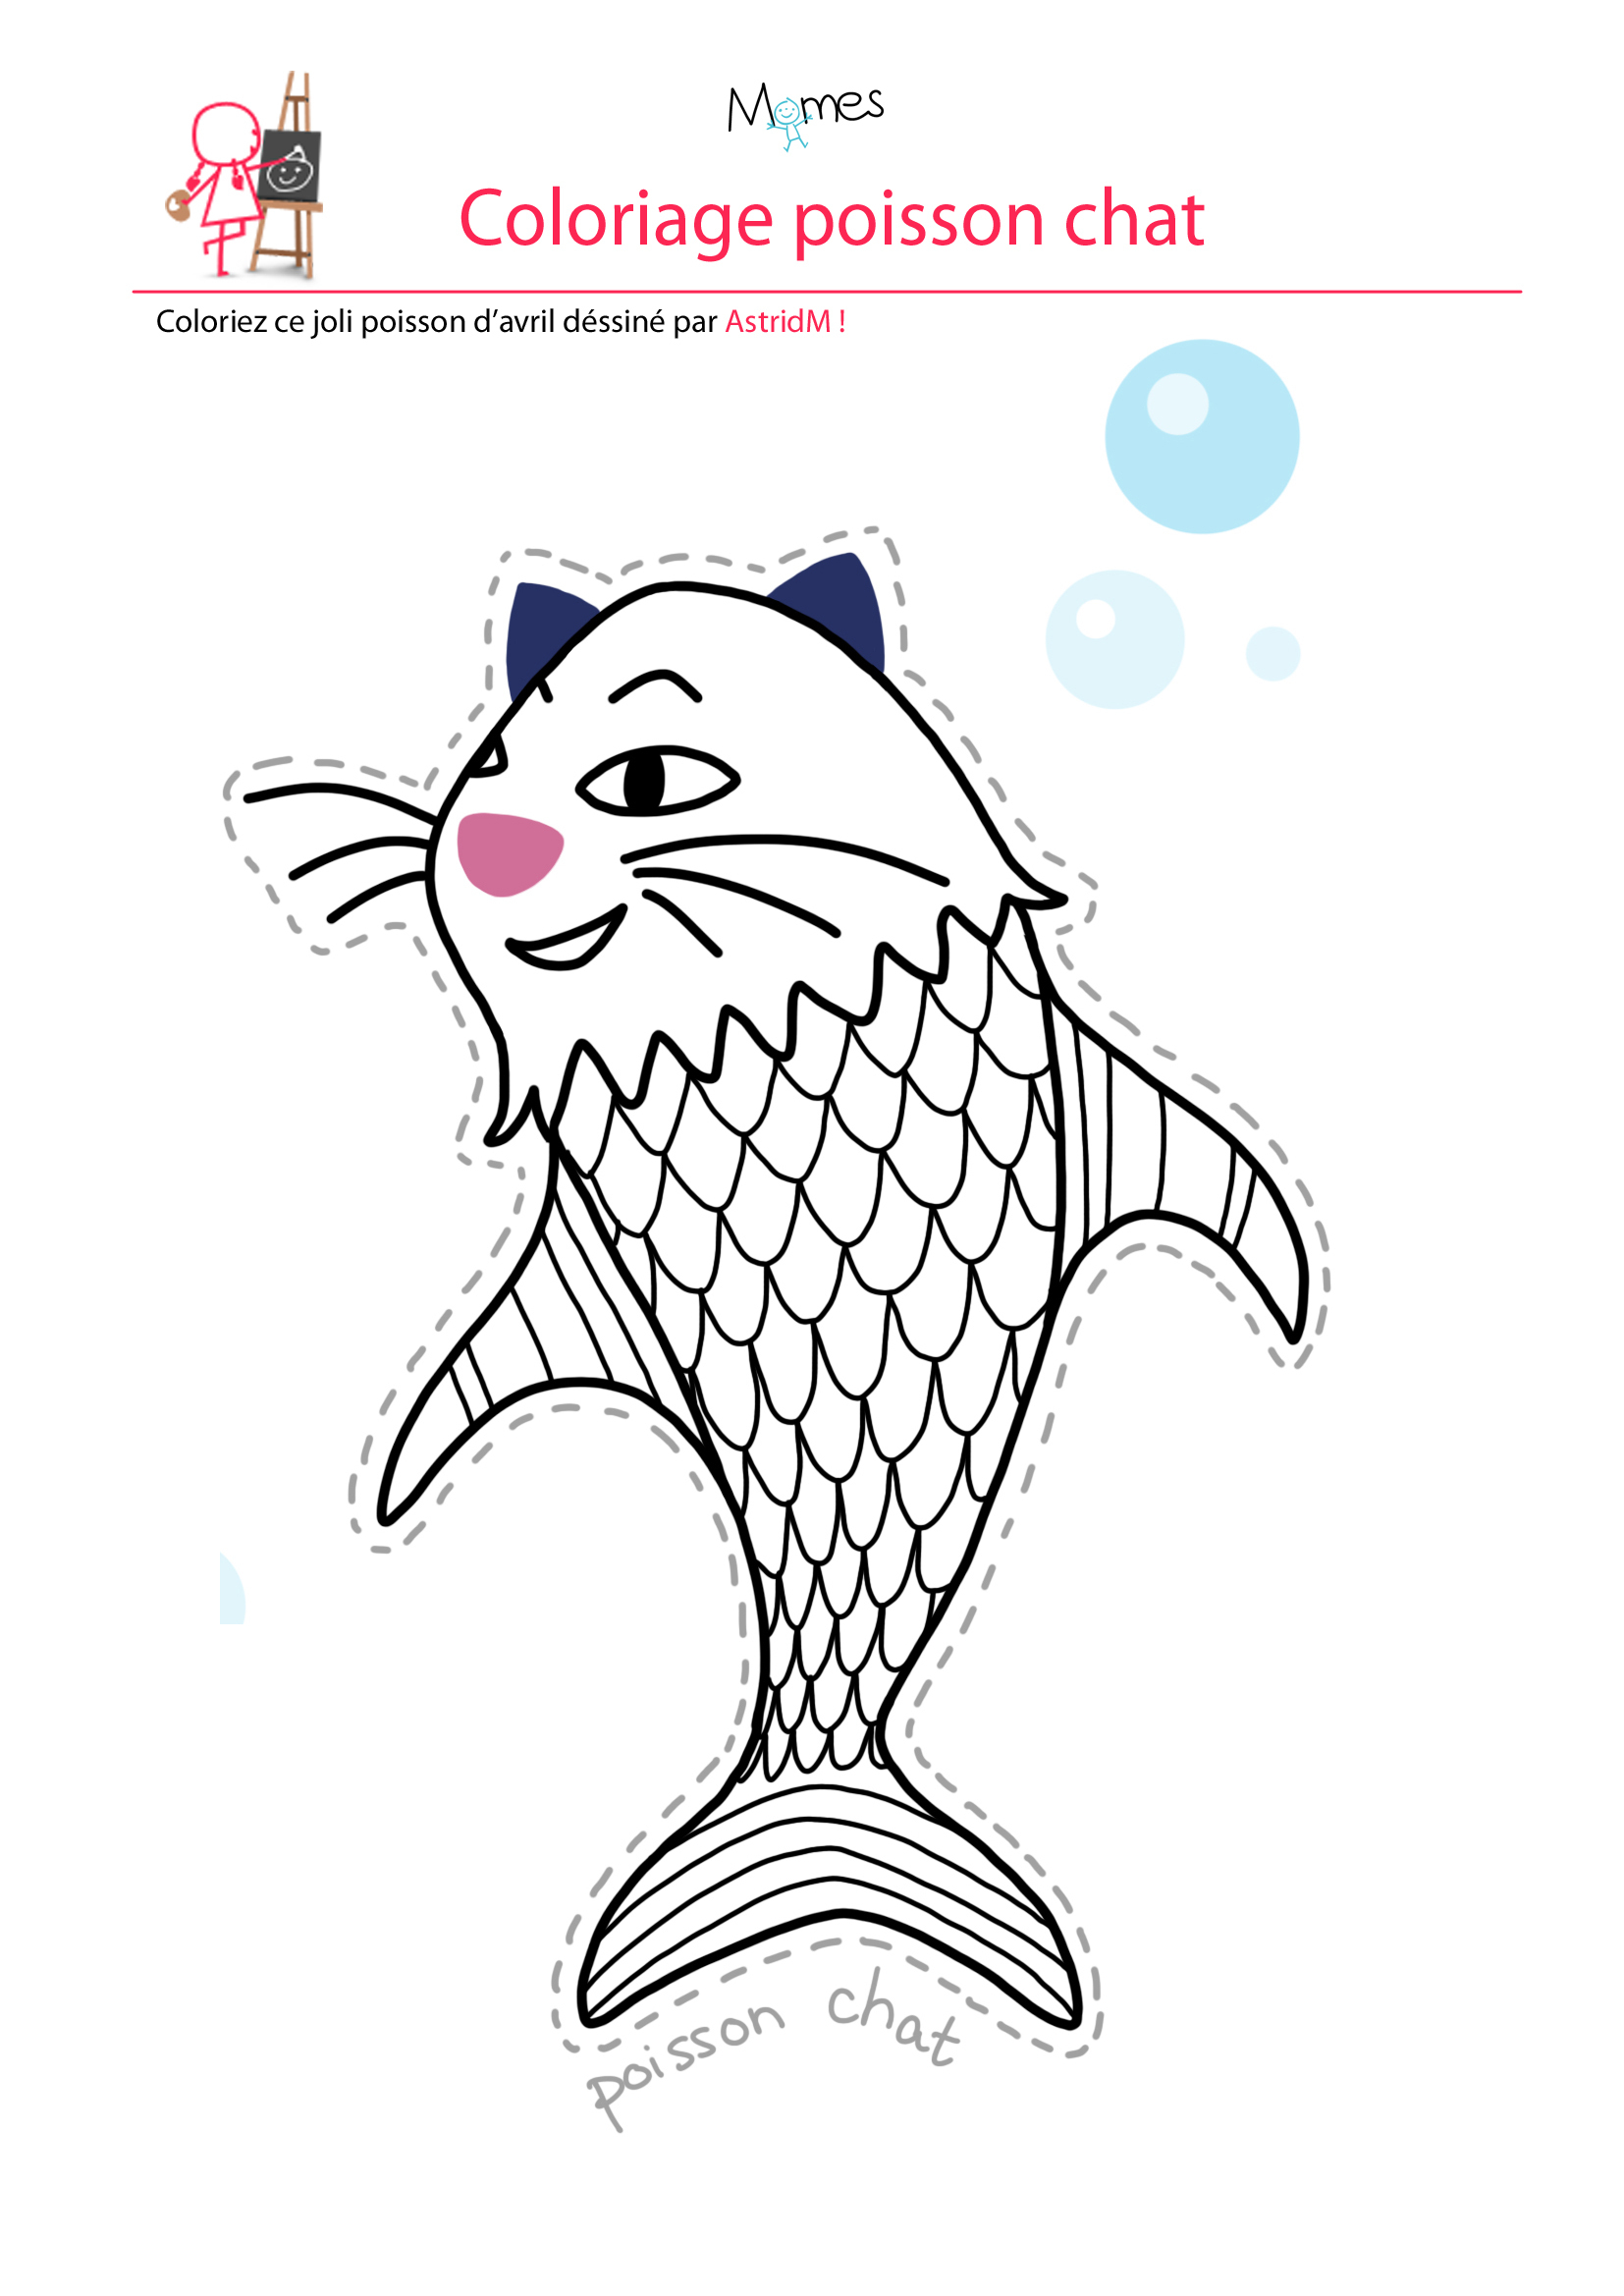 Coloriage Poisson D'Avril : Le Poisson Chat - Momes serapportantà Coloriage De Chat À Imprimer